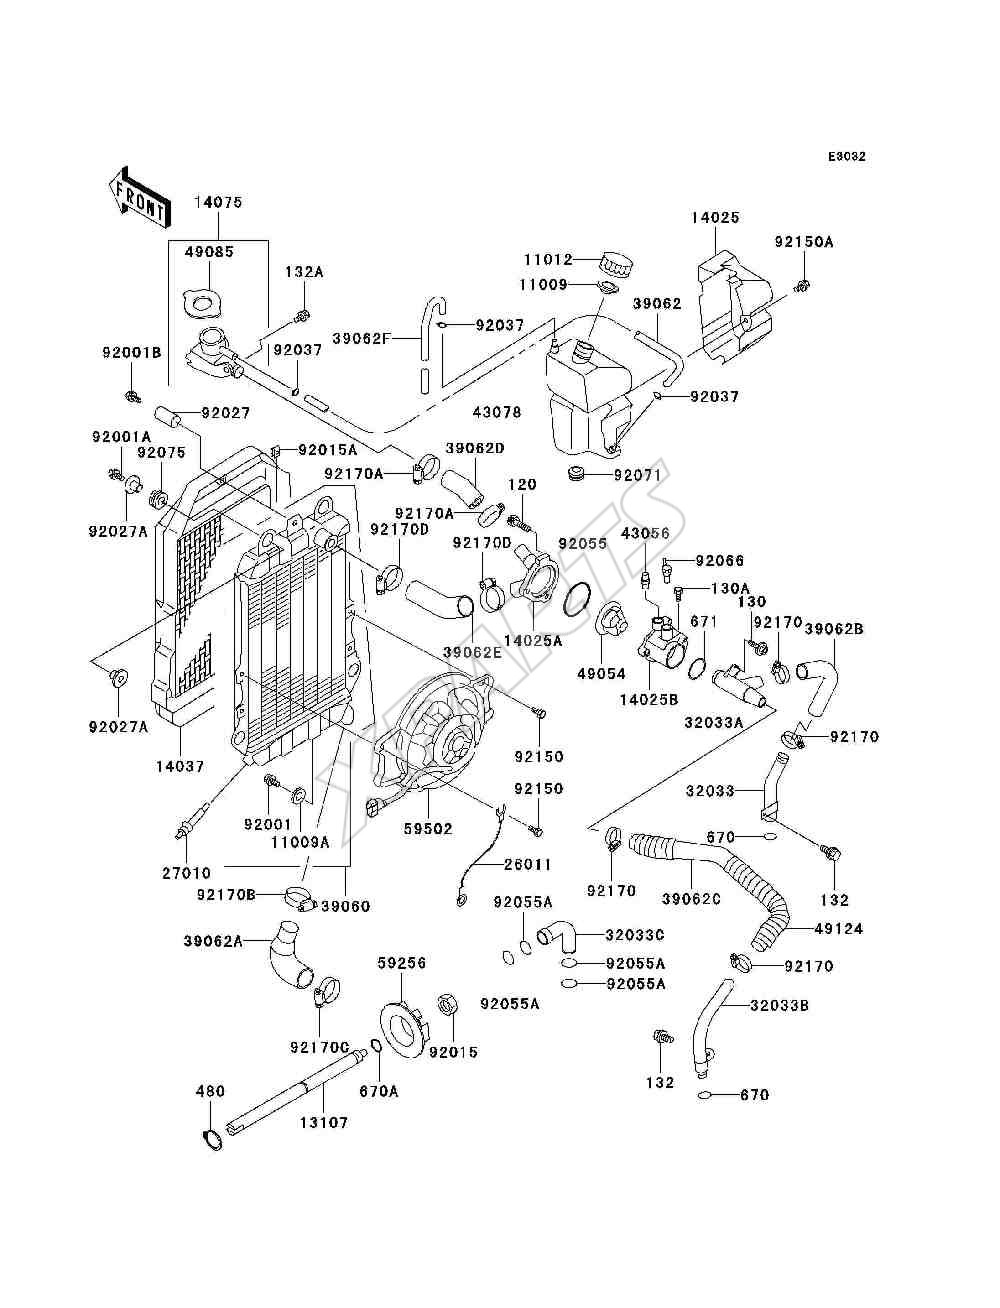 1977 vw beetle fuse box diagram  diagram  auto wiring diagram